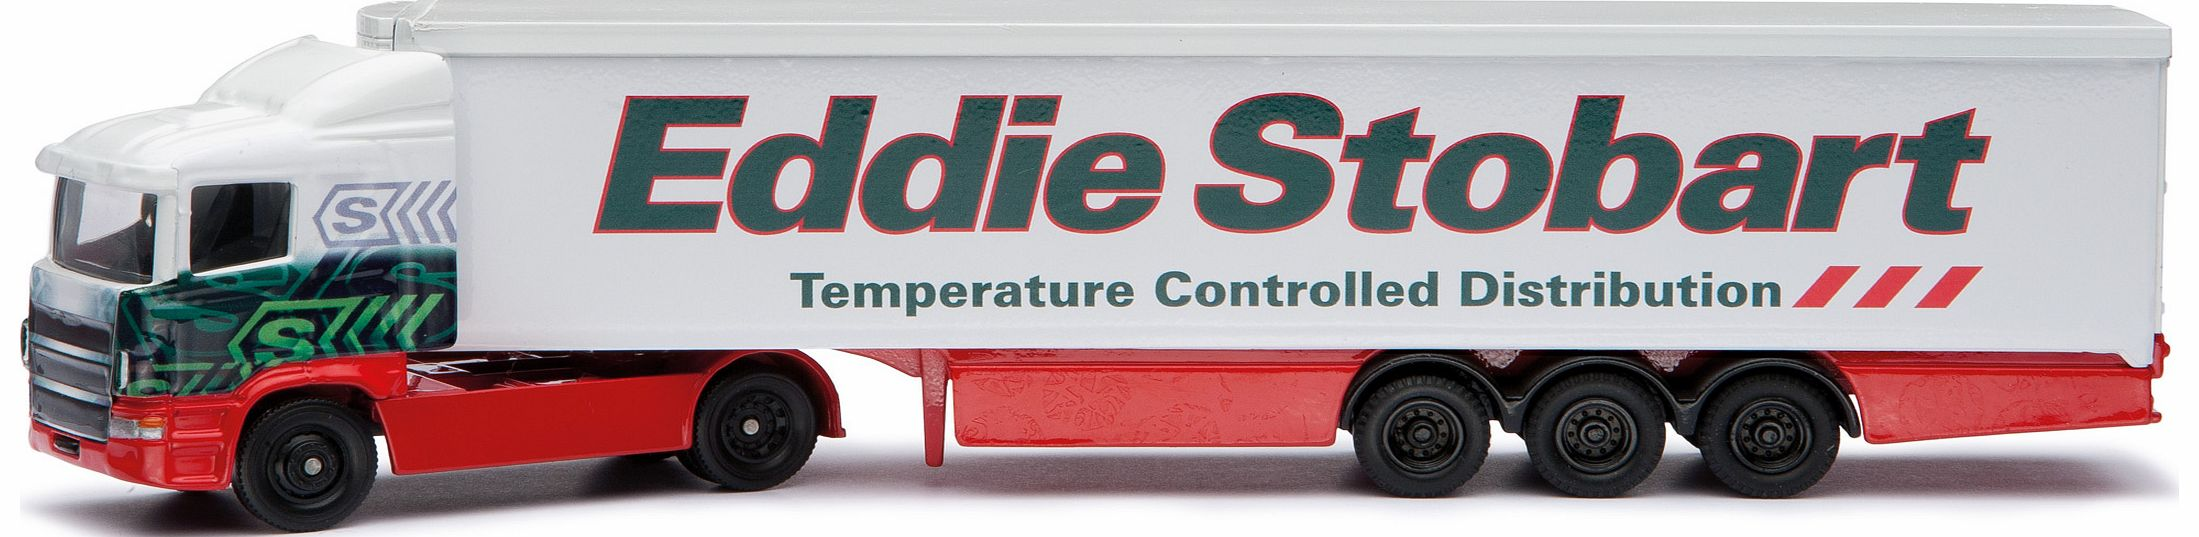 Eddie Stobart Super Hauler Fridge